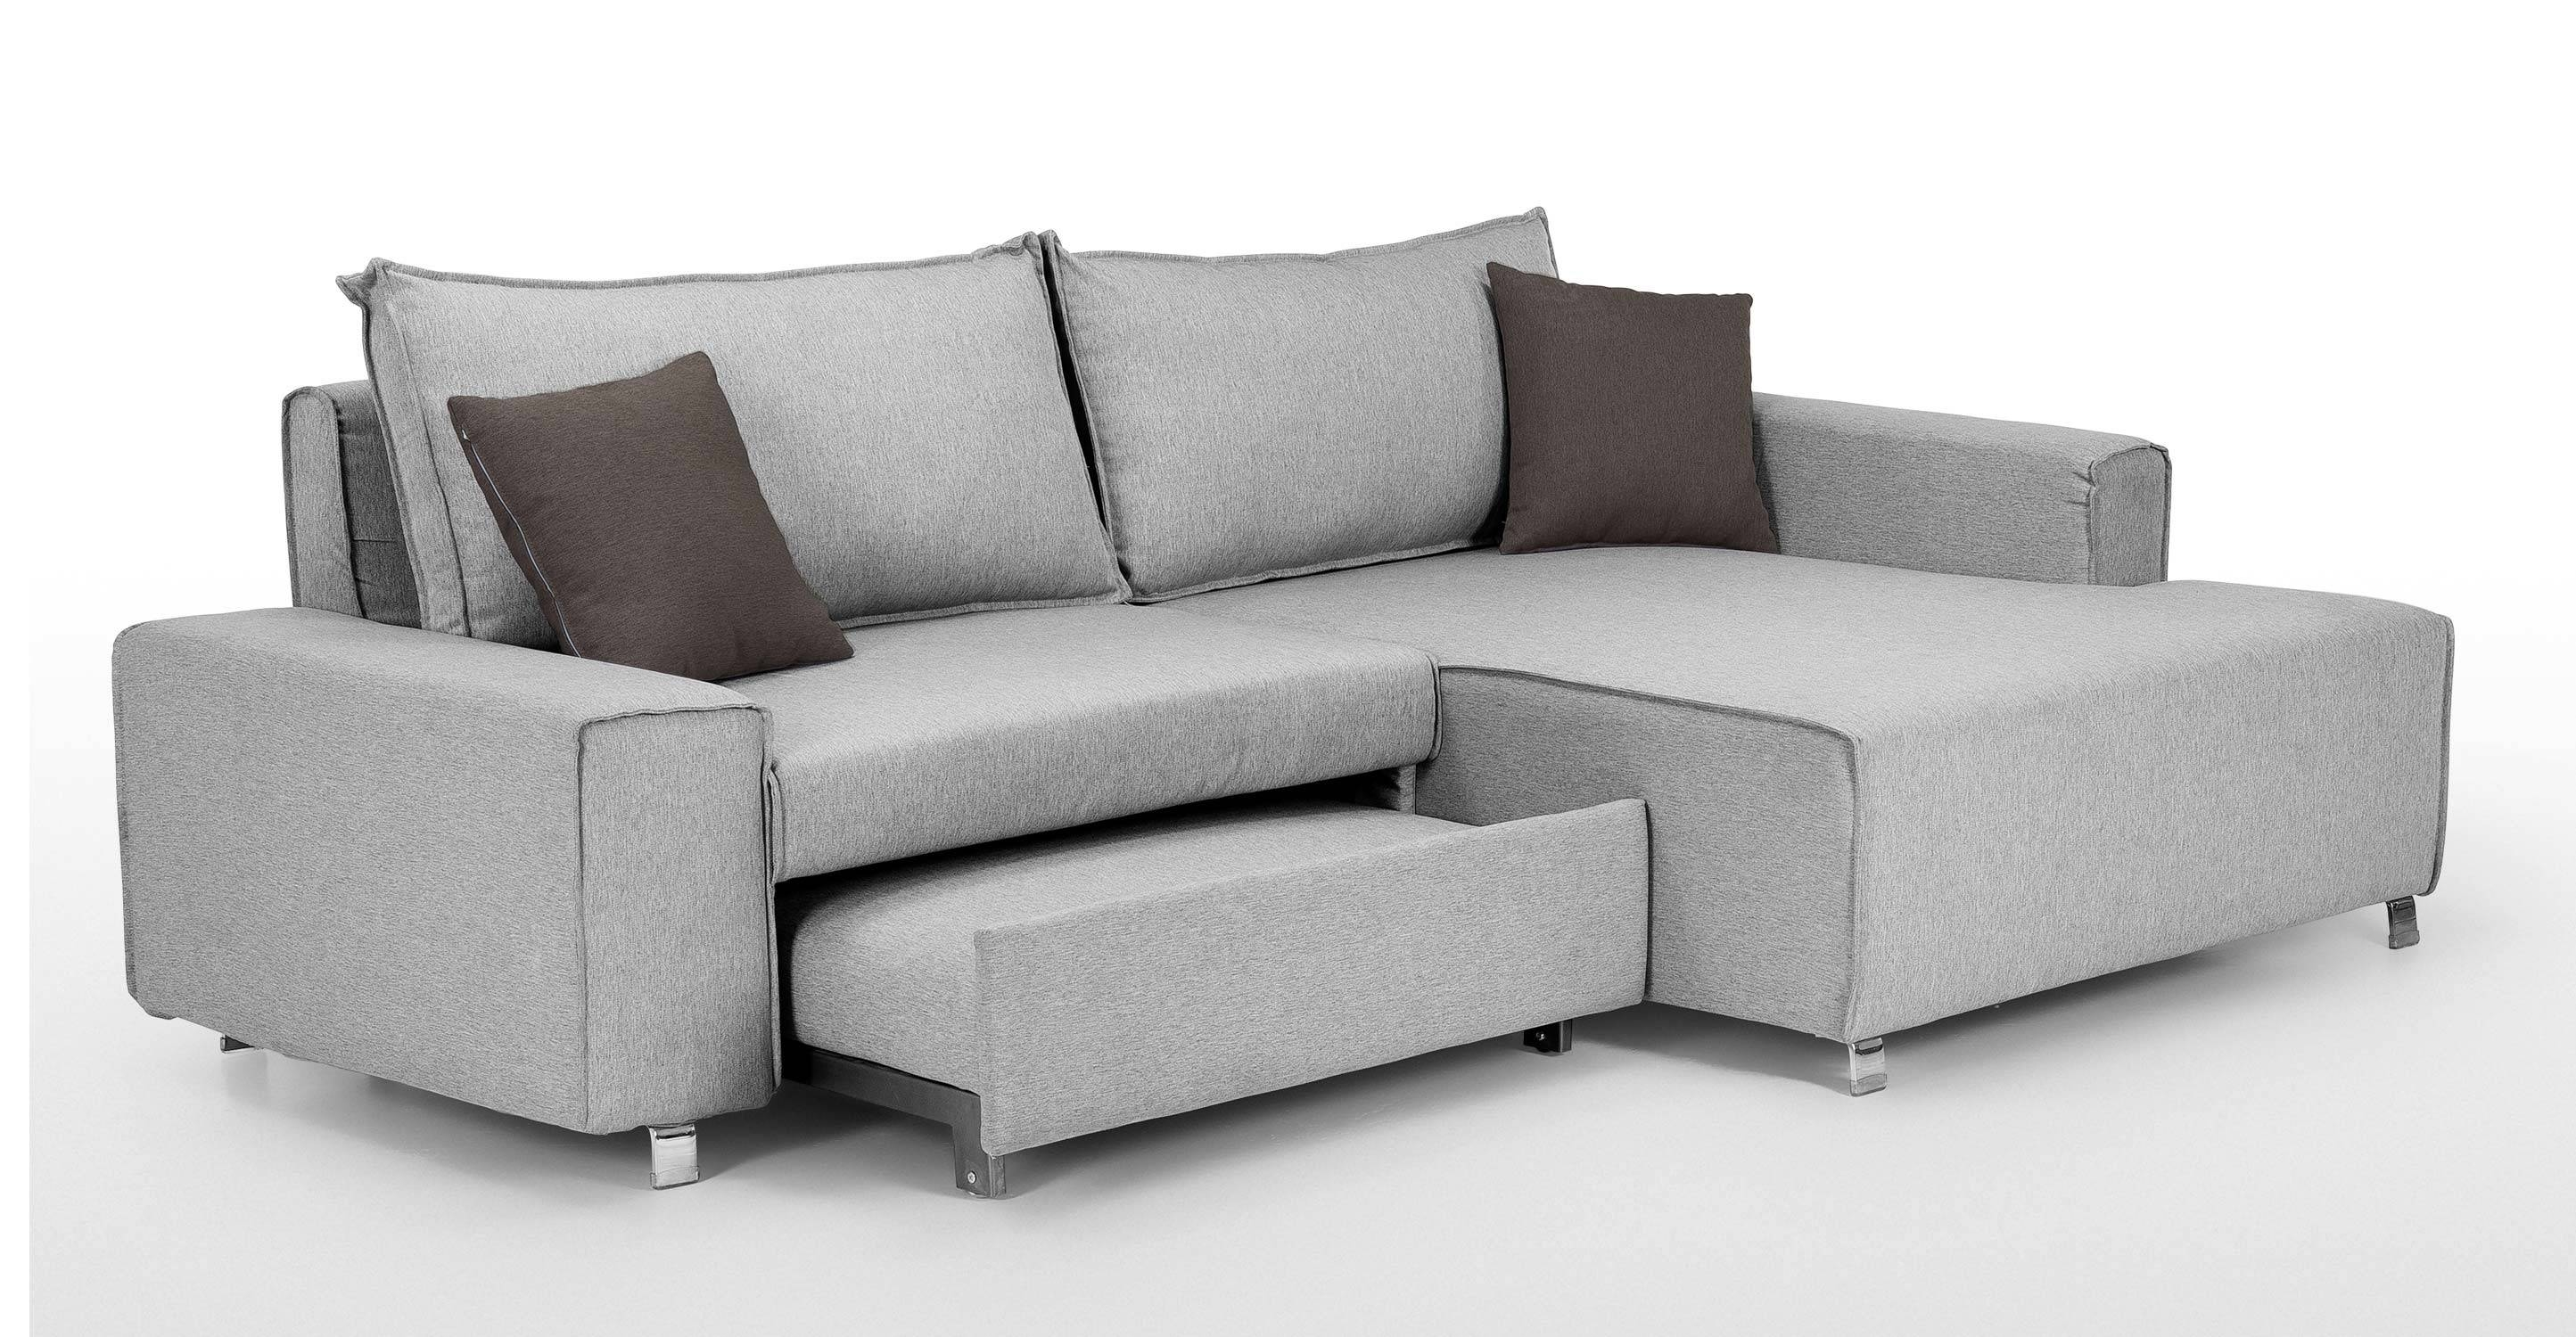 Small Corner Sofa For Bedroom | Tehranmix Decoration with regard to Unique Corner Sofas (Image 11 of 30)